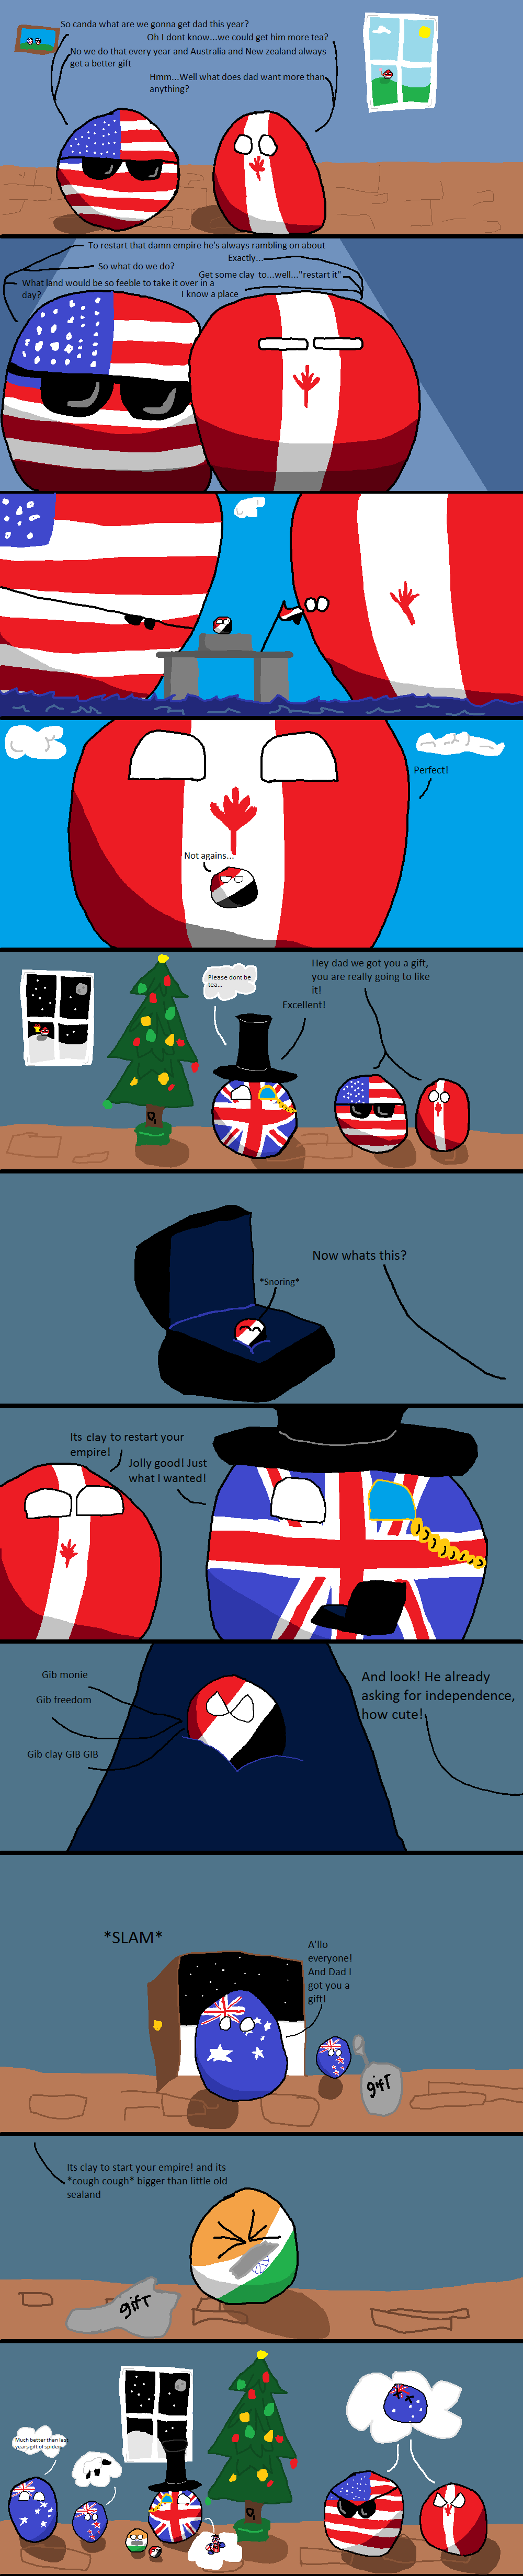 An Anglo Christmas. . t, ttll. A Perfect Representation. Pro Paint Skills FTW